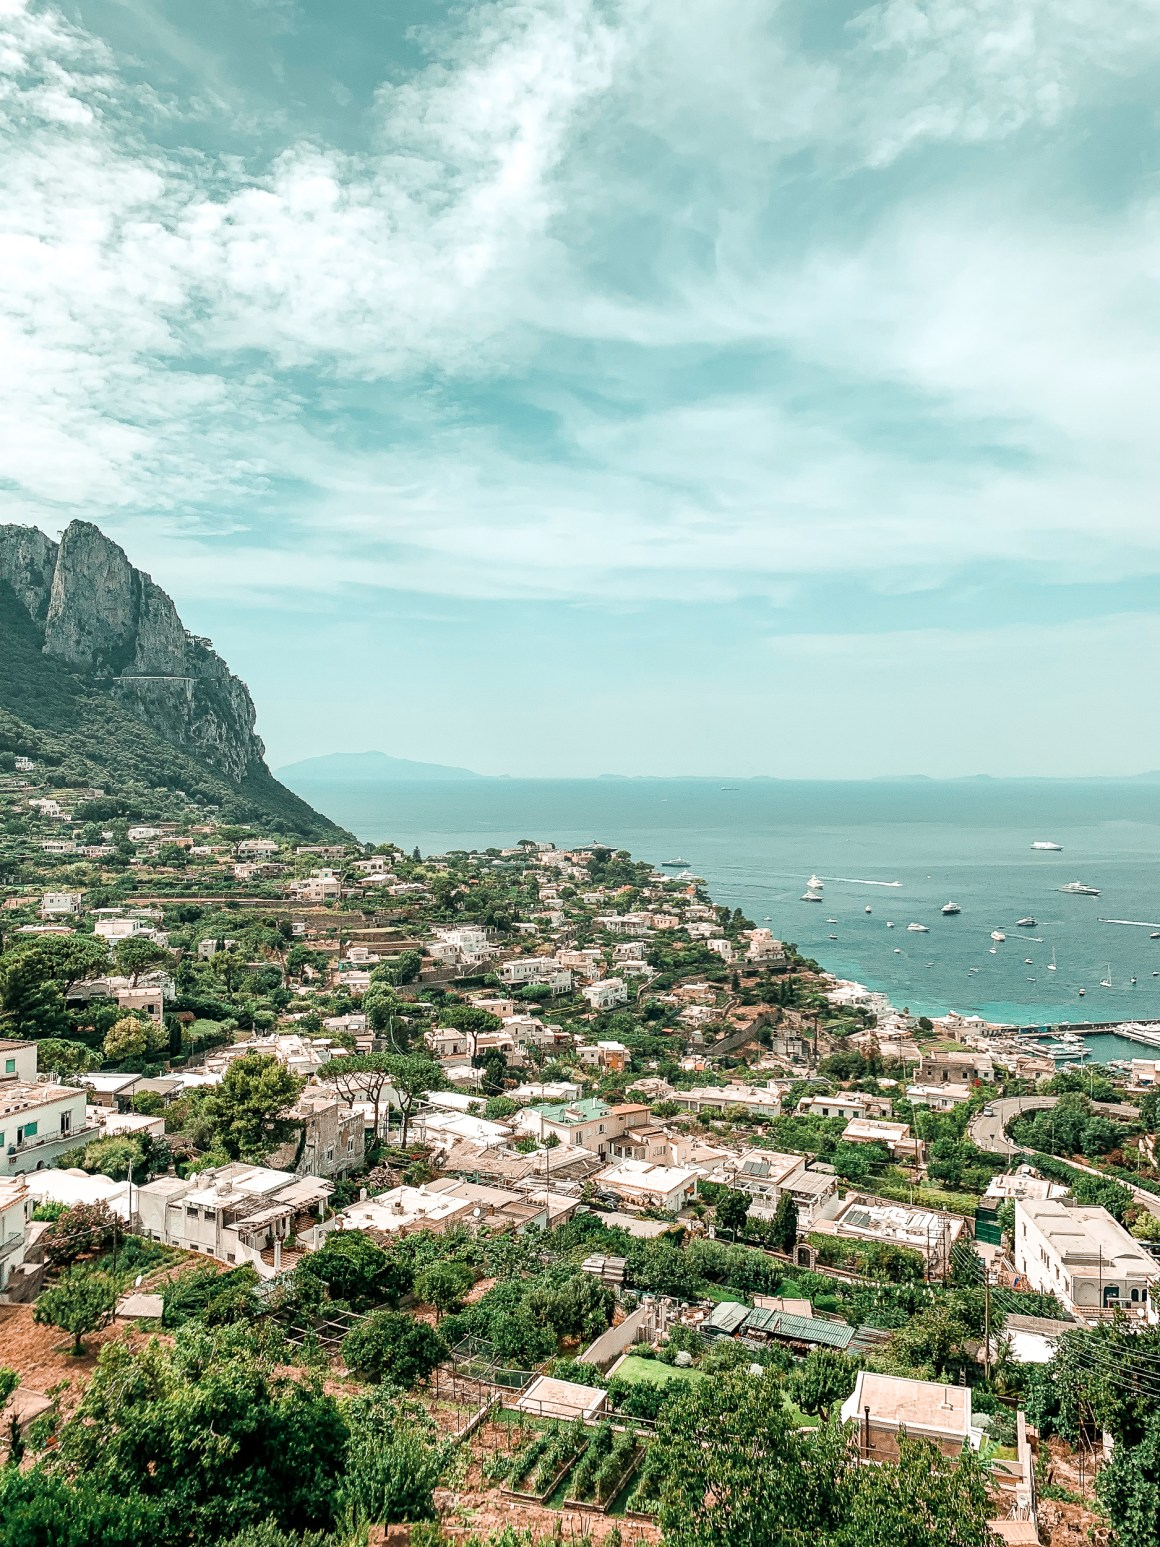 Flaneren in het chique Capri (Napels & Amalfi travel guide 6/7)